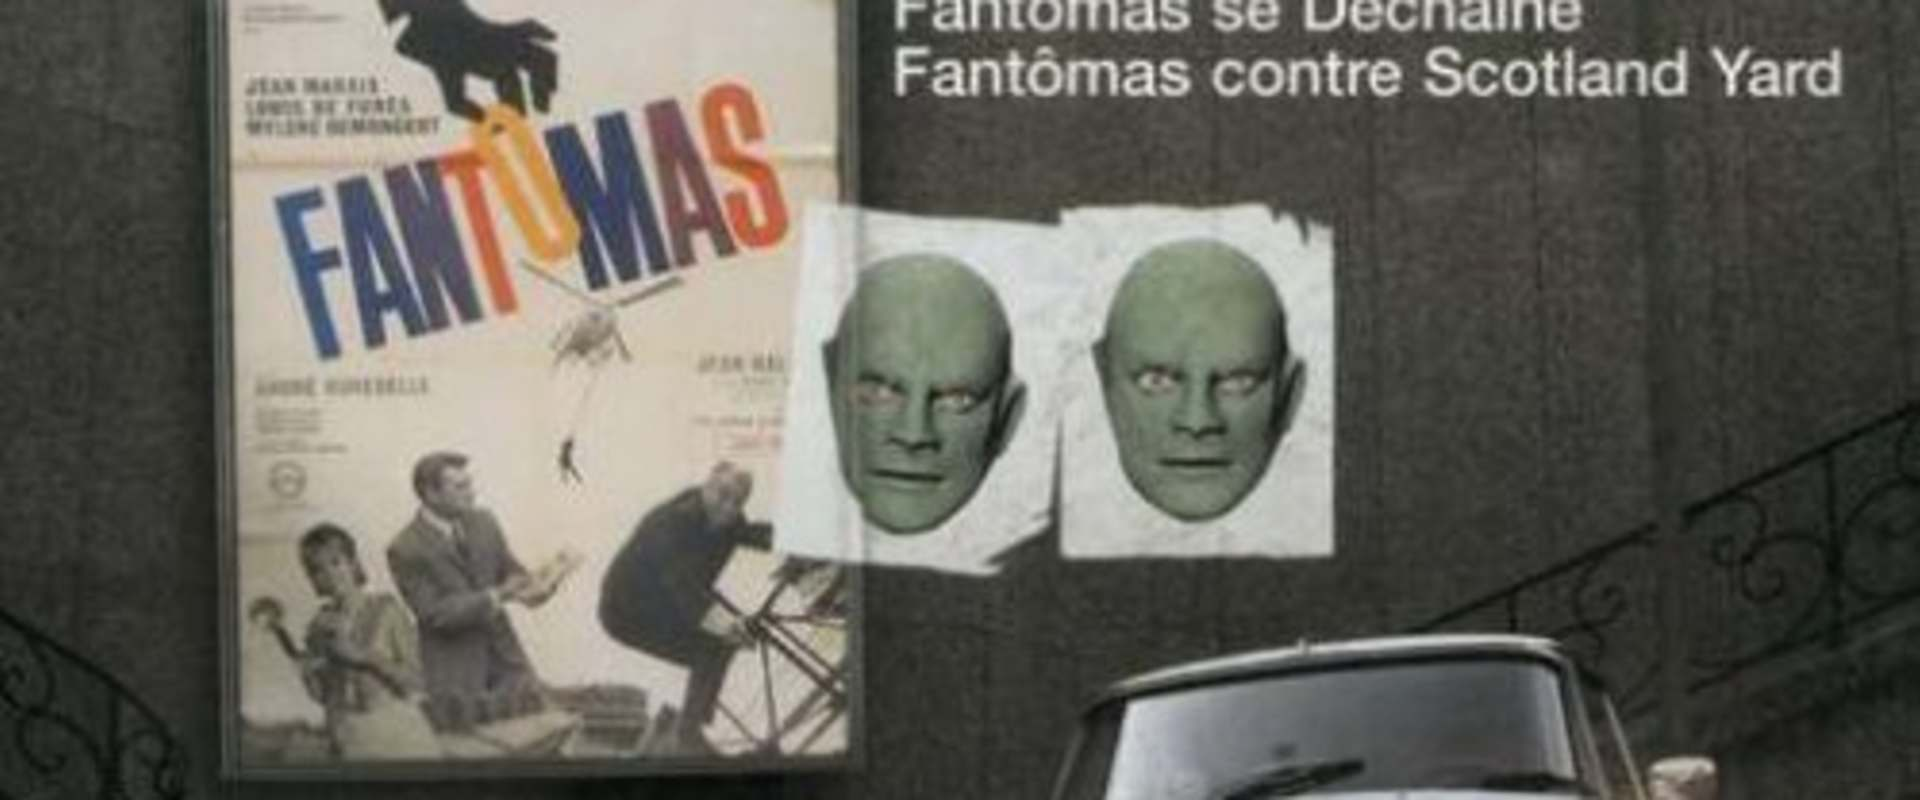 Fantomas background 1